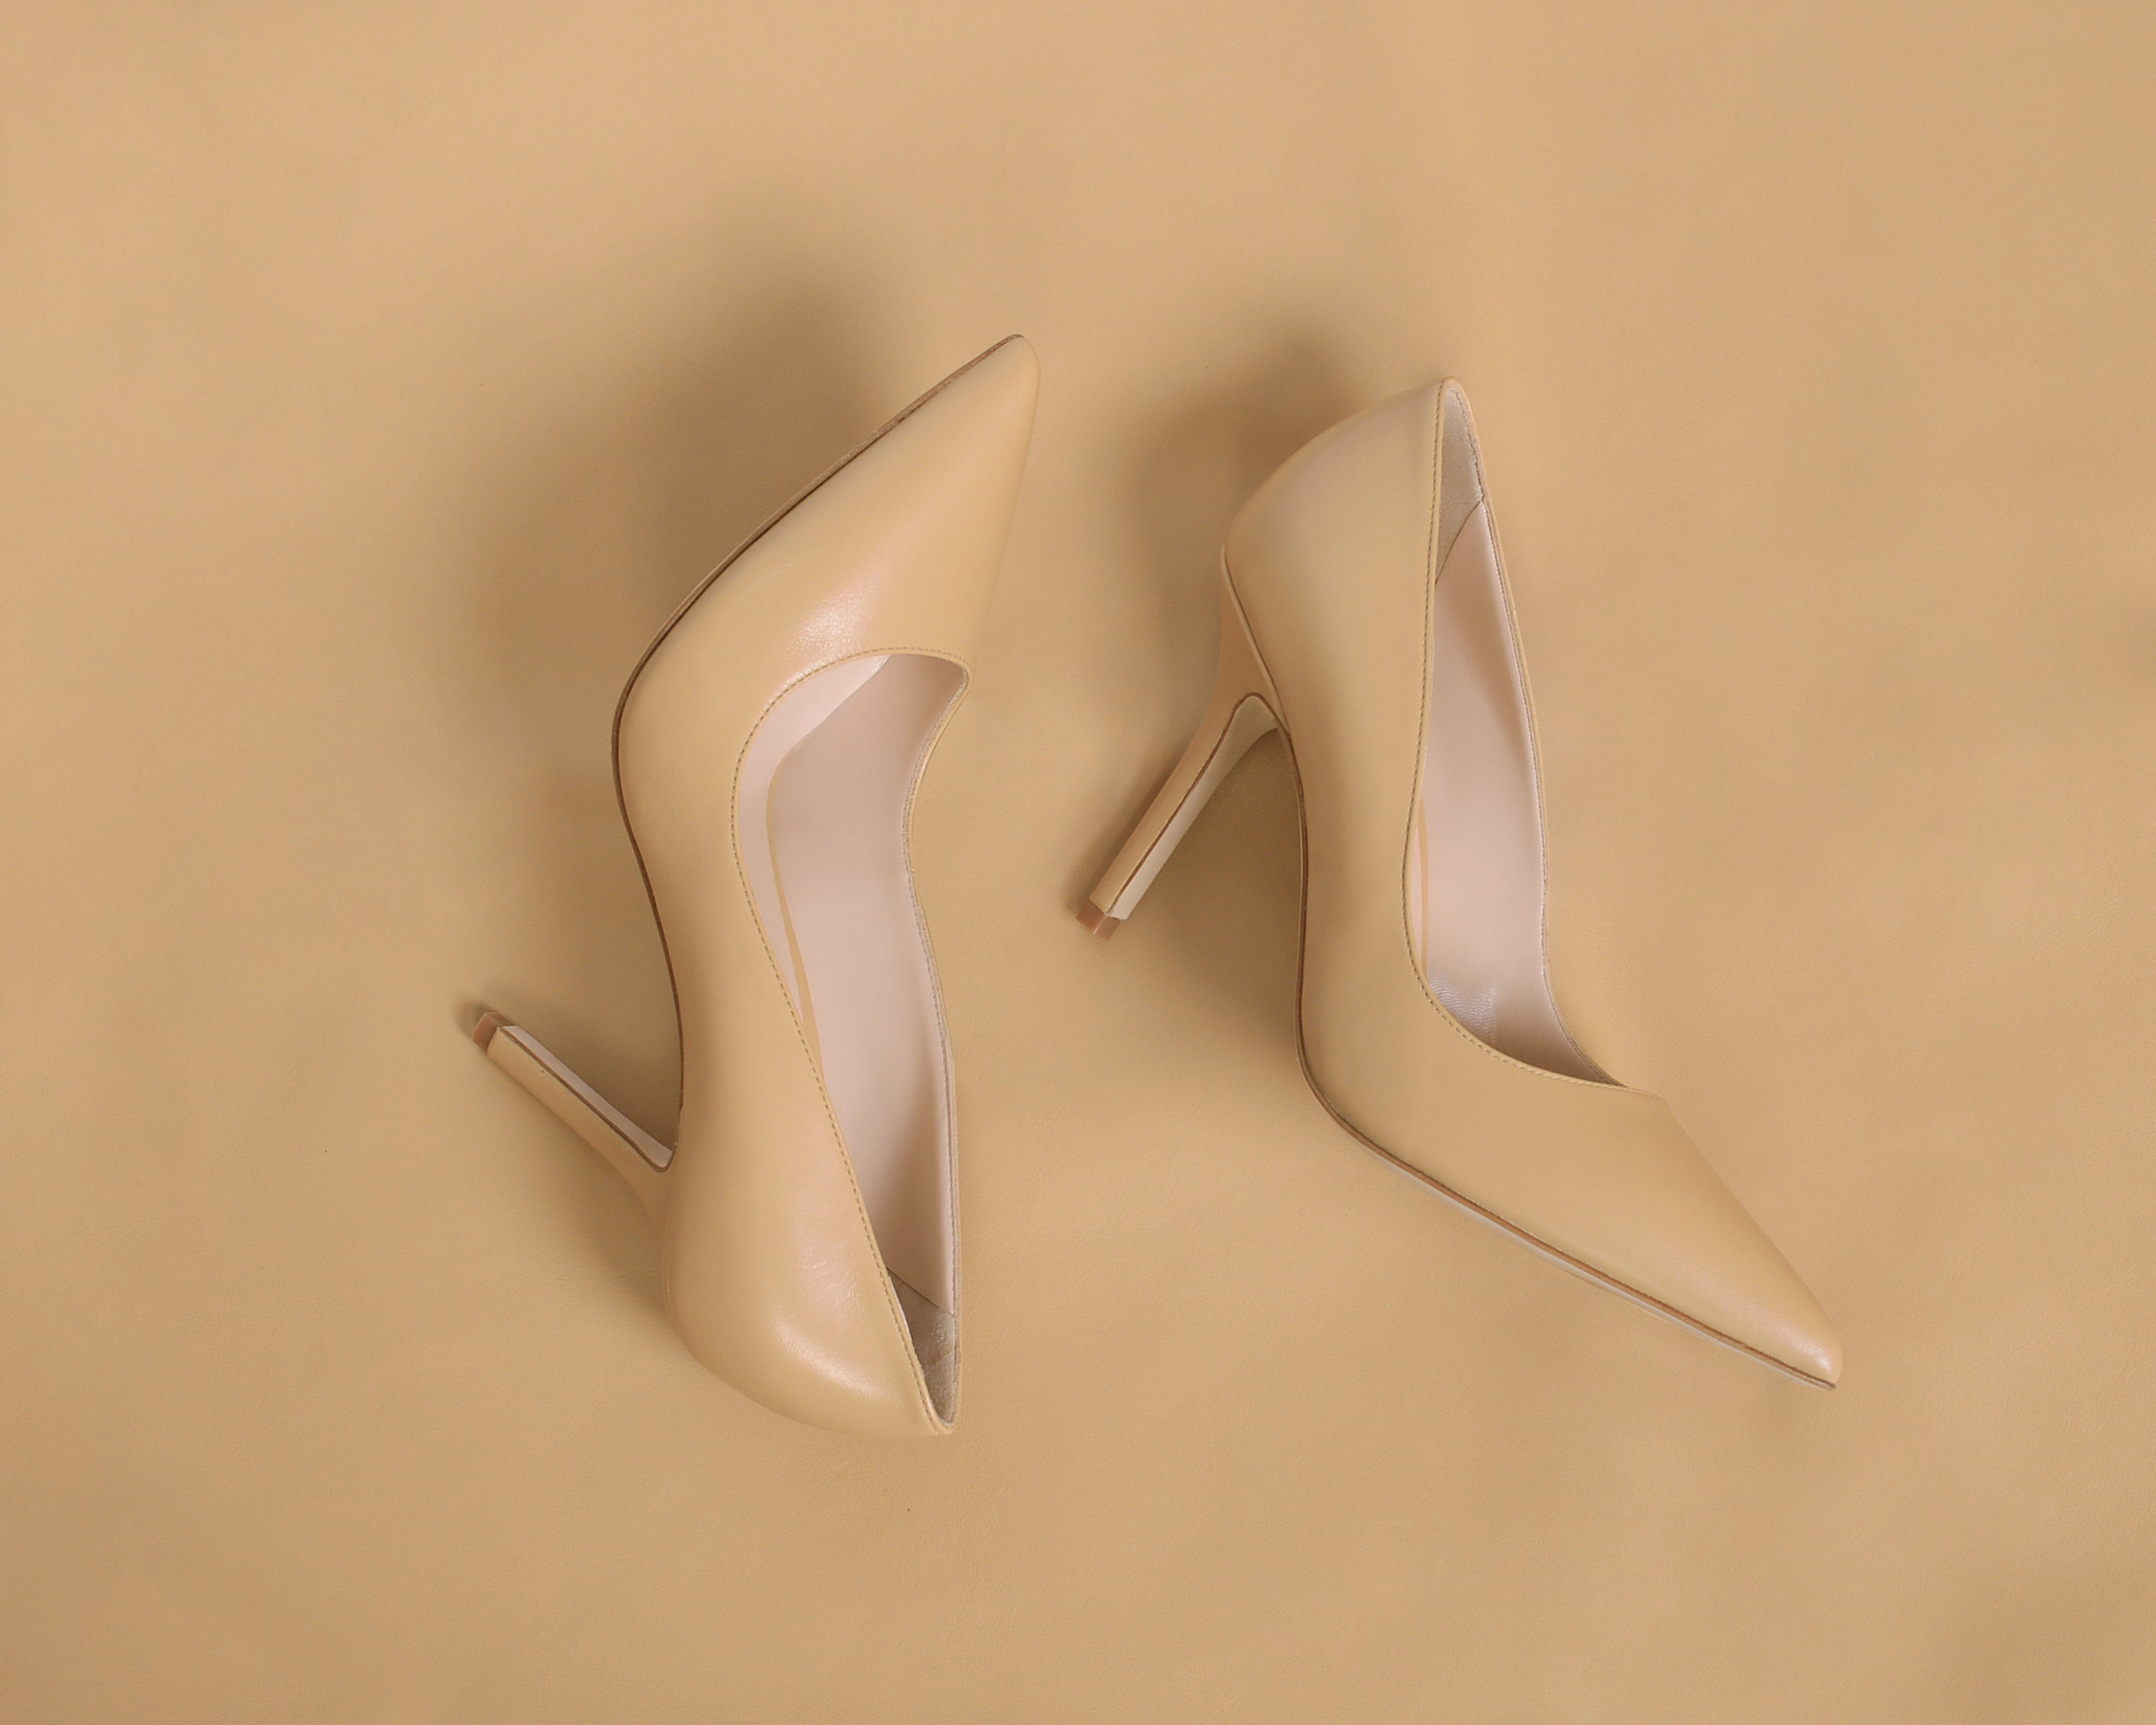 Beige Pumps. Women's Light brown High Heels. Nude Pumps. Nude Skin tone women's shoes. Business Shoes. Office Professional High Heels. Crème color. Cream, tan shoes.